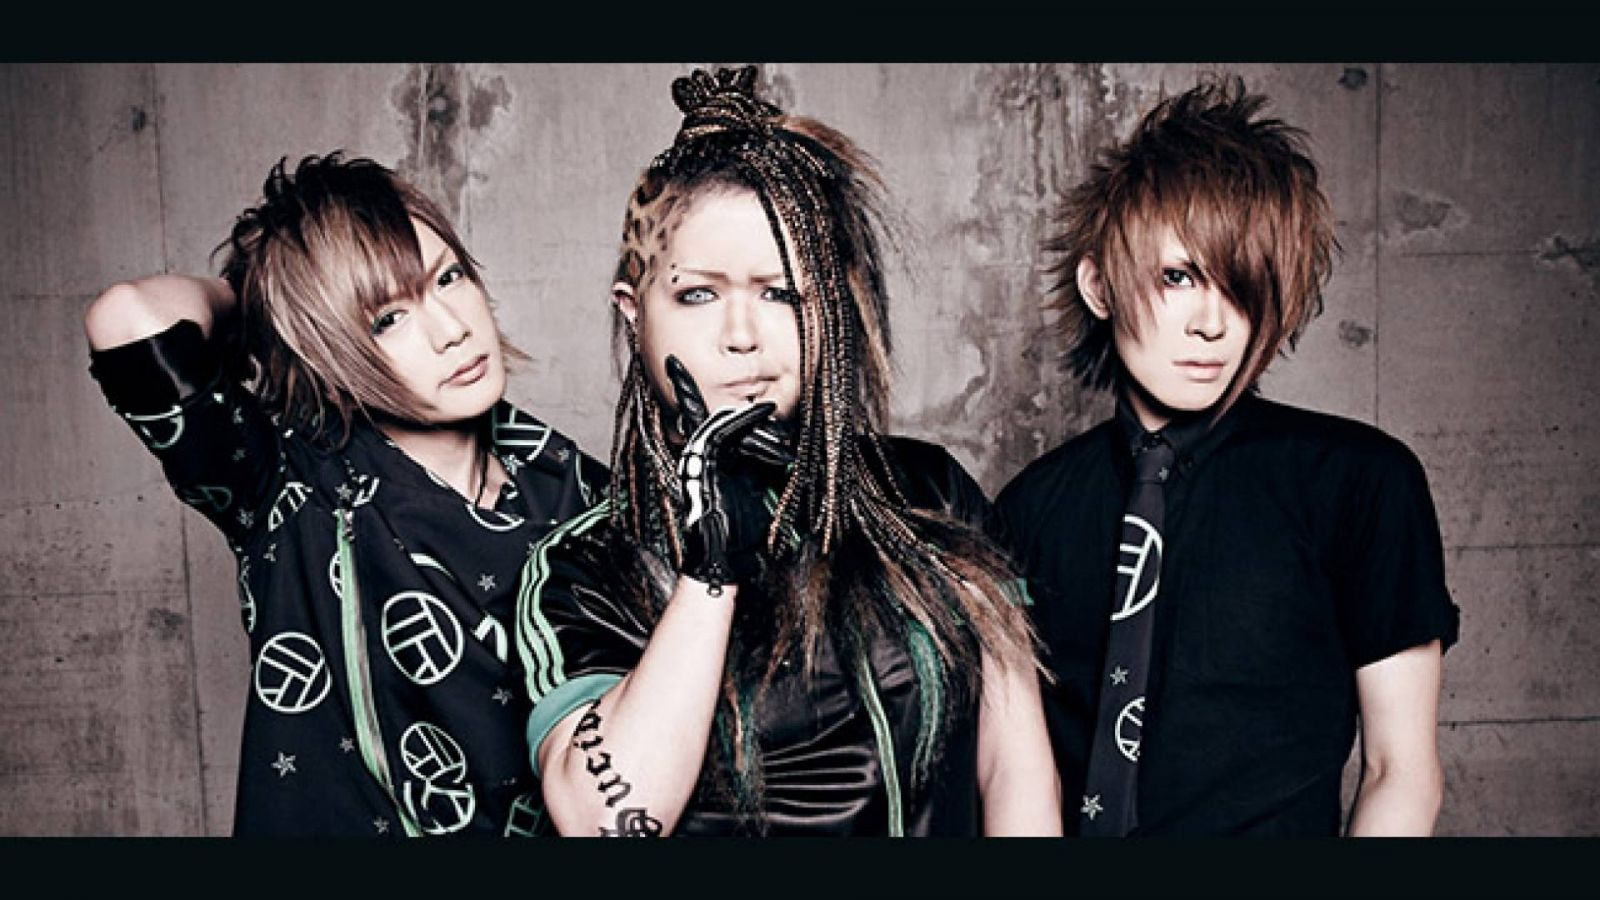 xTRiPx to Disband © xTRiPx. All Rights Reserved